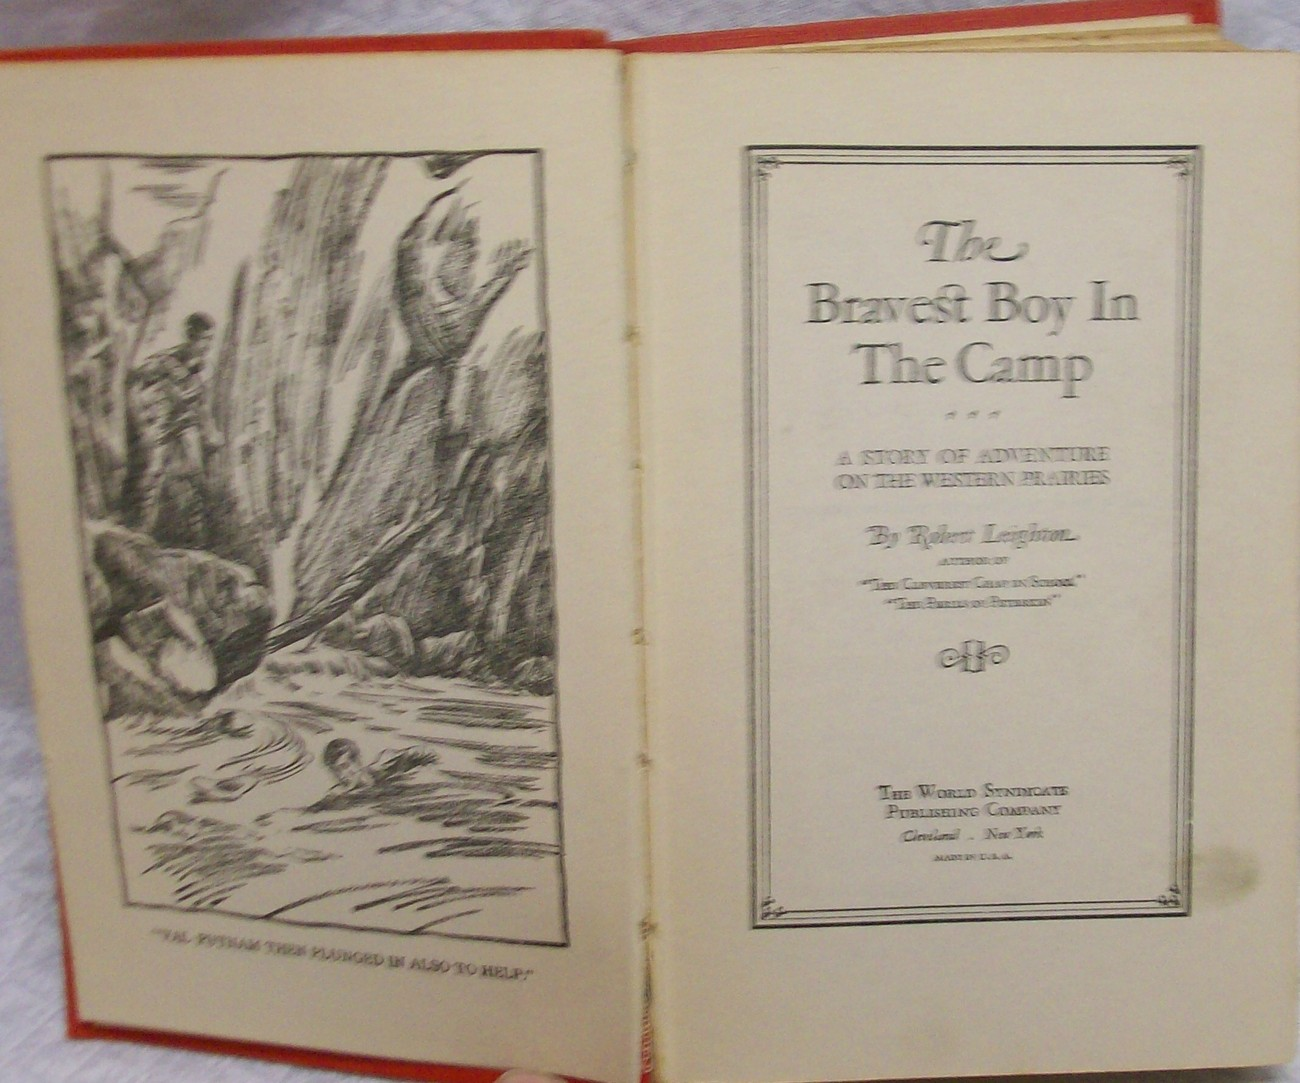 The Bravest Boy in Camp  Robert Leighton